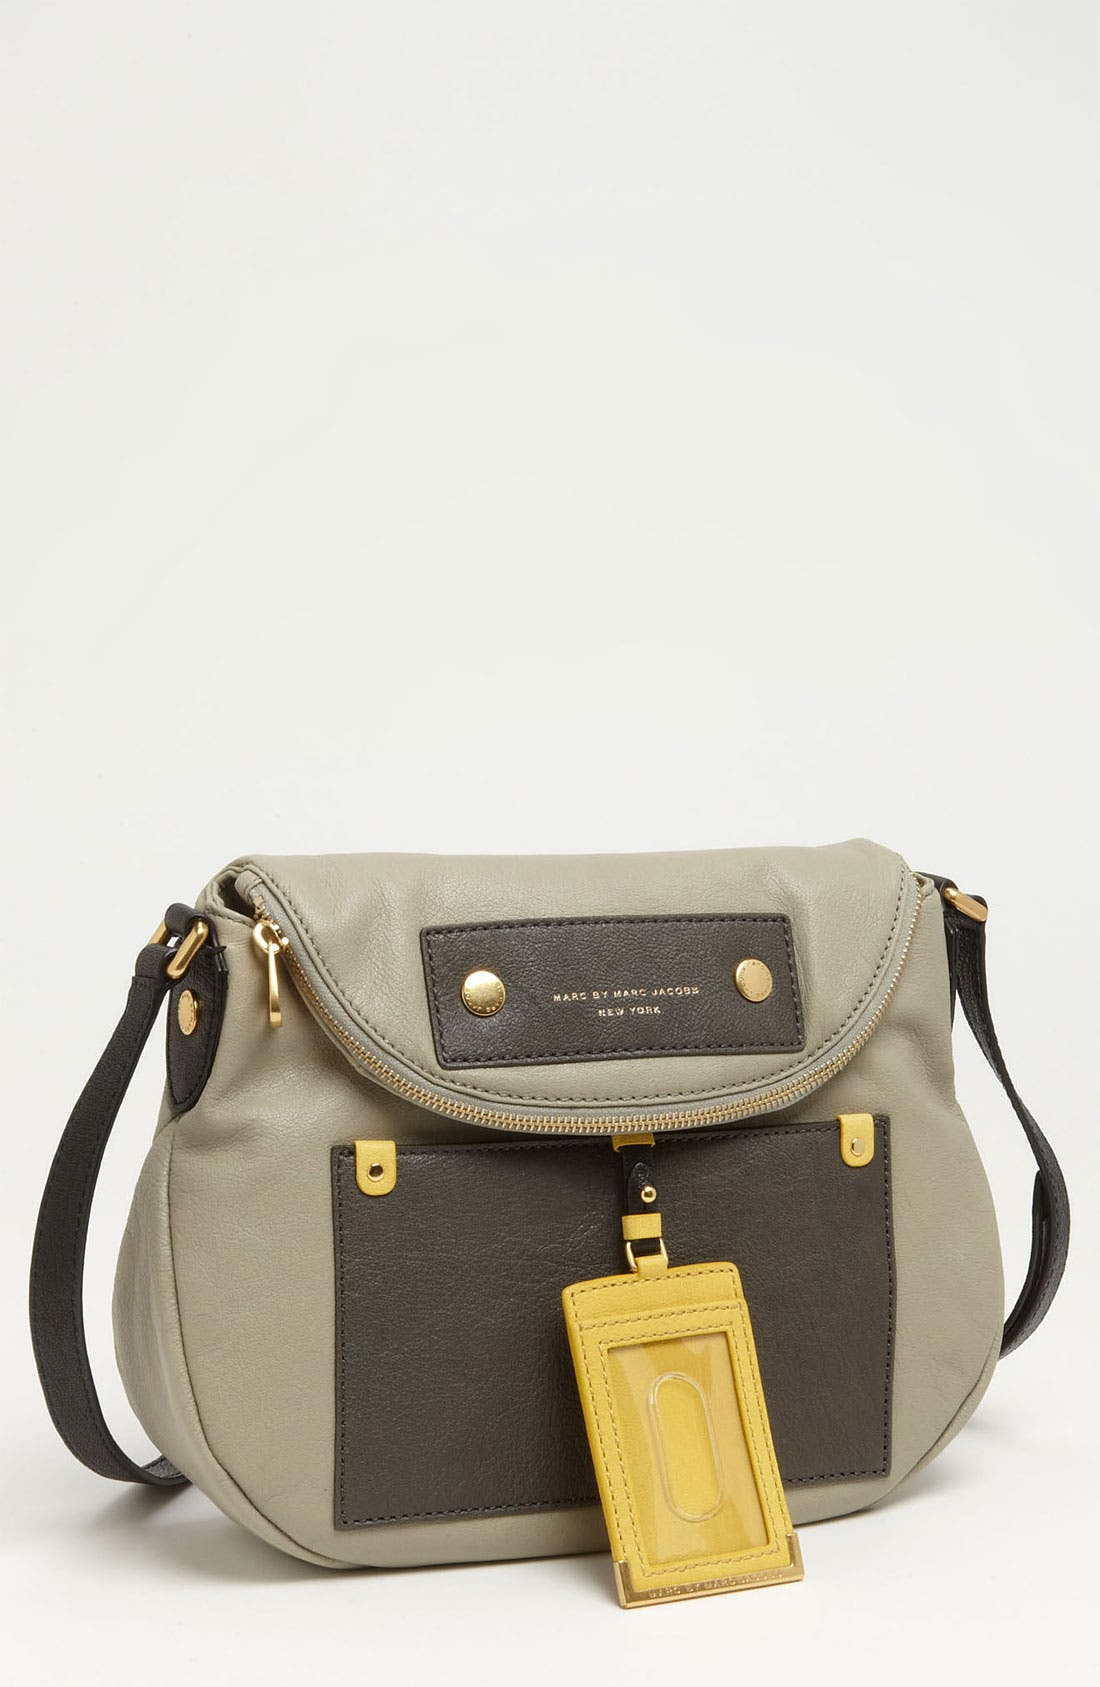 Main Image - MARC BY MARC JACOBS 'Preppy Colorblock - Natasha' Leather Crossbody Bag